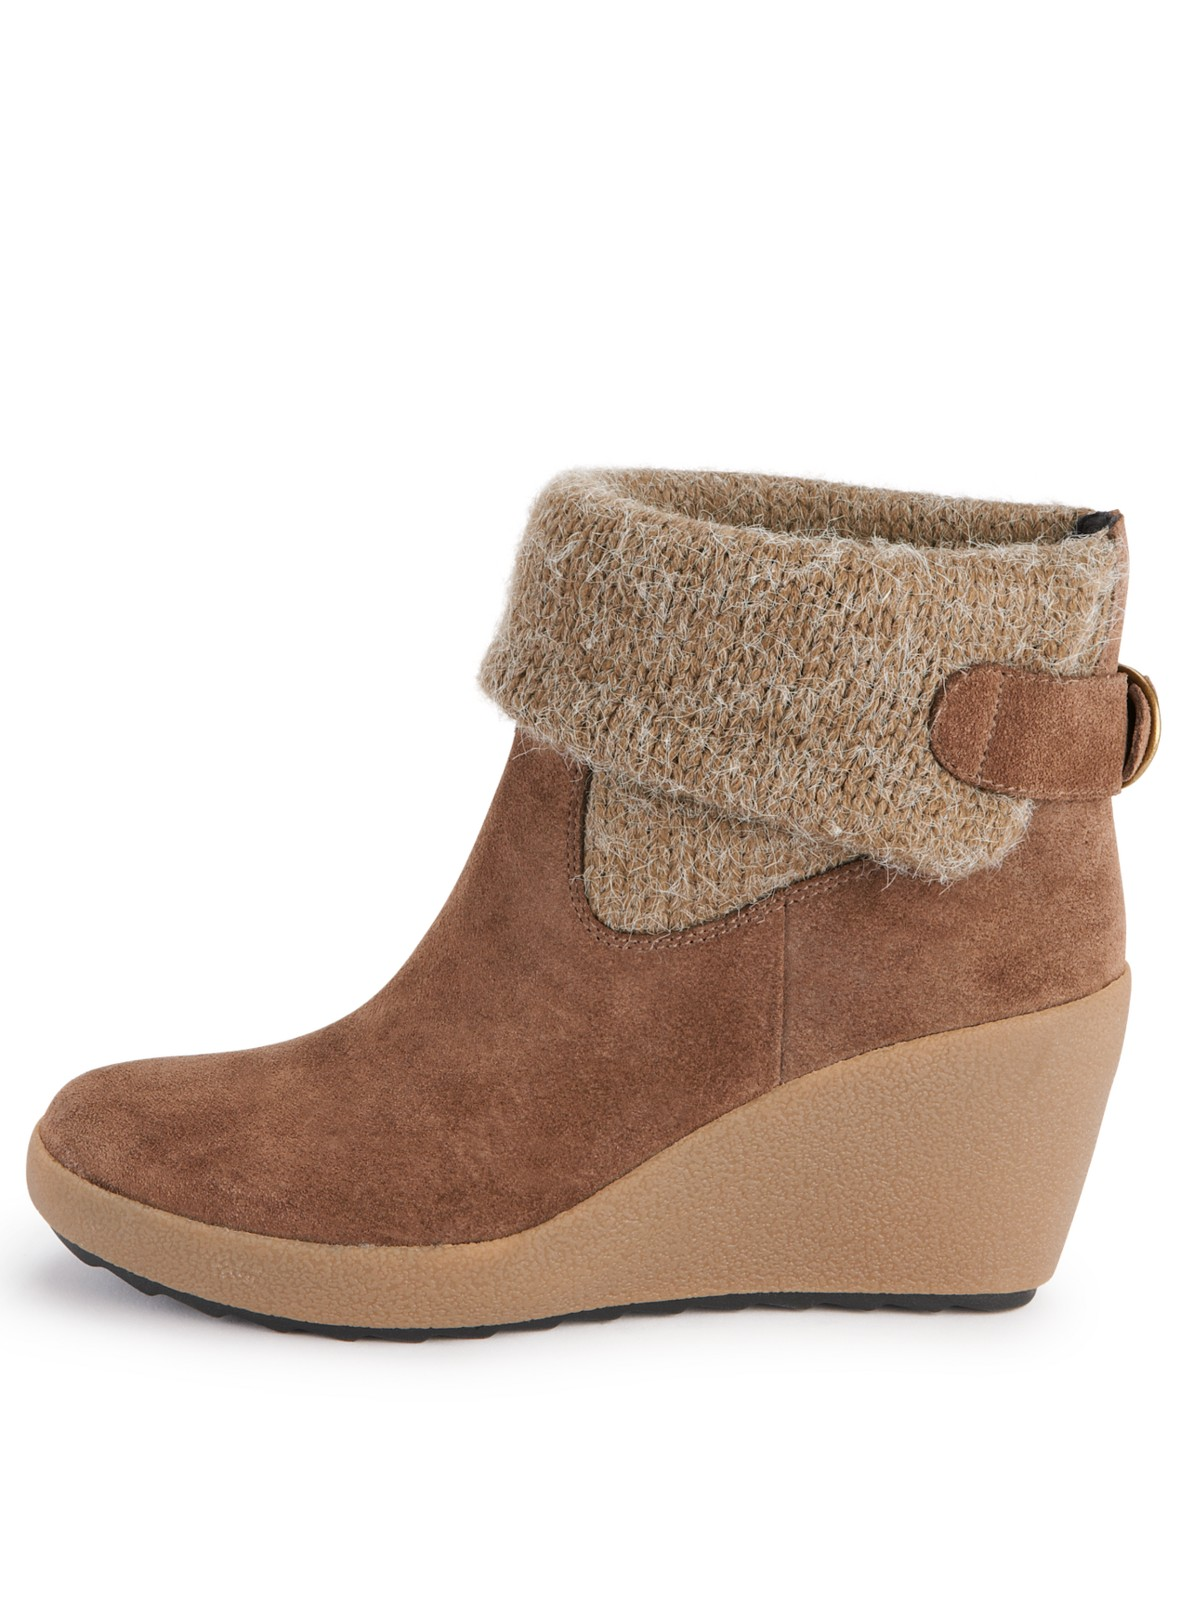 clarks clarks sound wedge ankle boot in brown